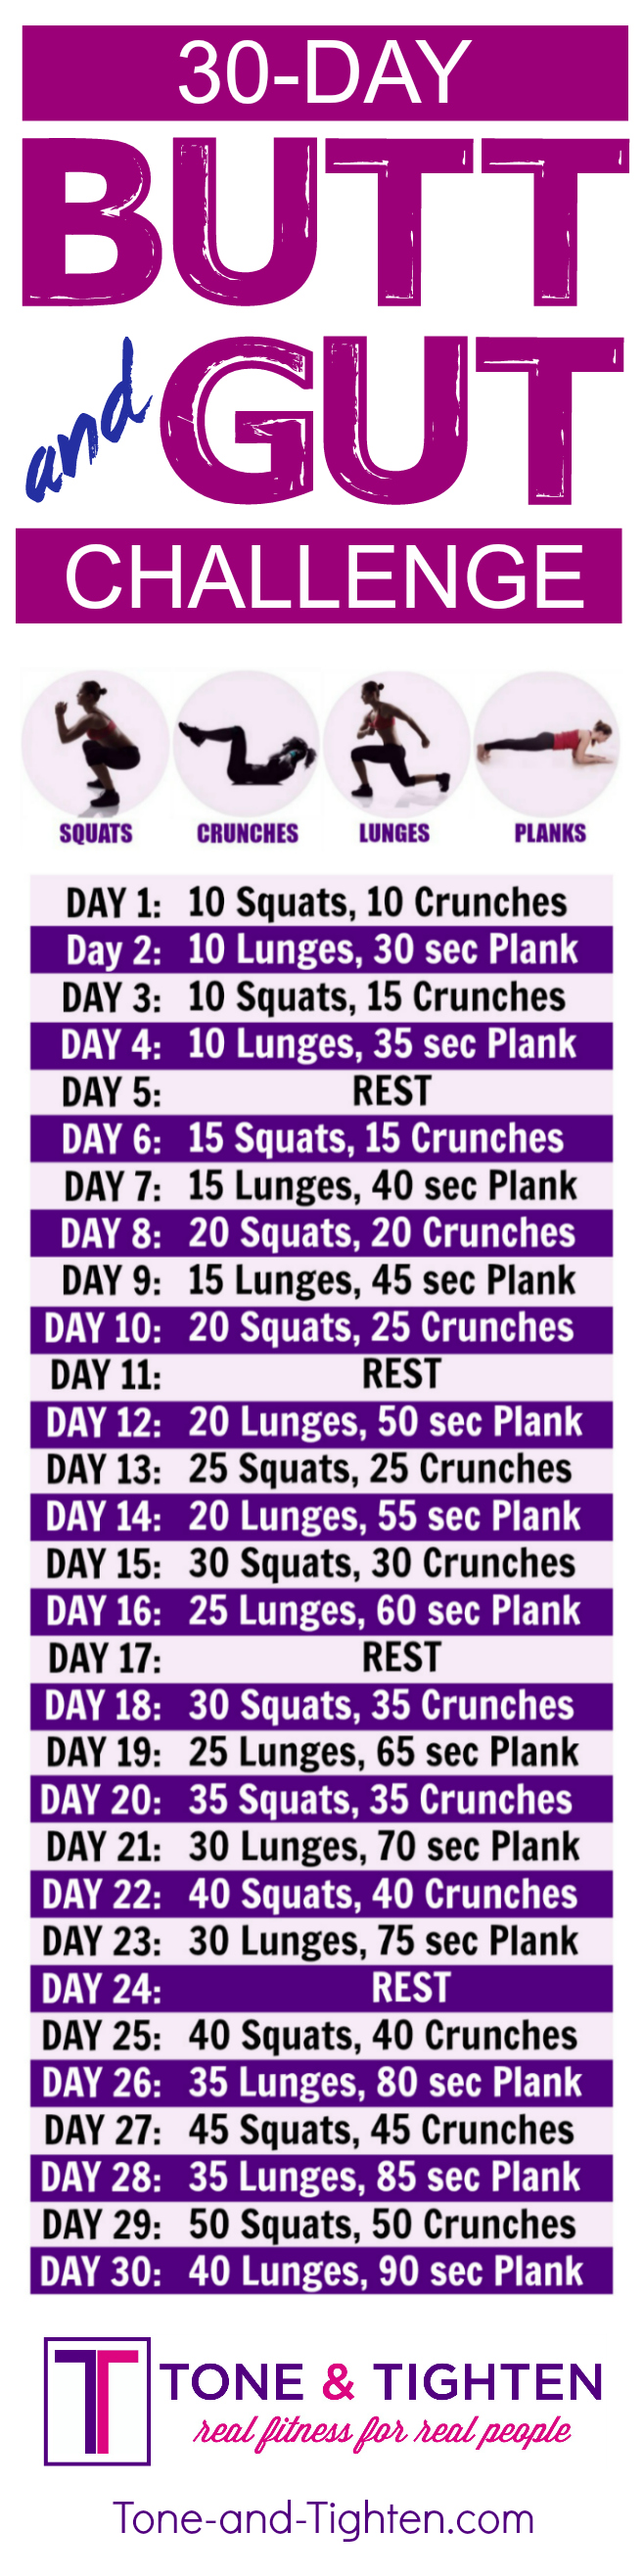 30-Day butt and abs workout challenge you can do from home! CLICK THE LINK FOR VIDEO INSTRUCTION OF EXERCISES! From Tone-and-Tighten.com